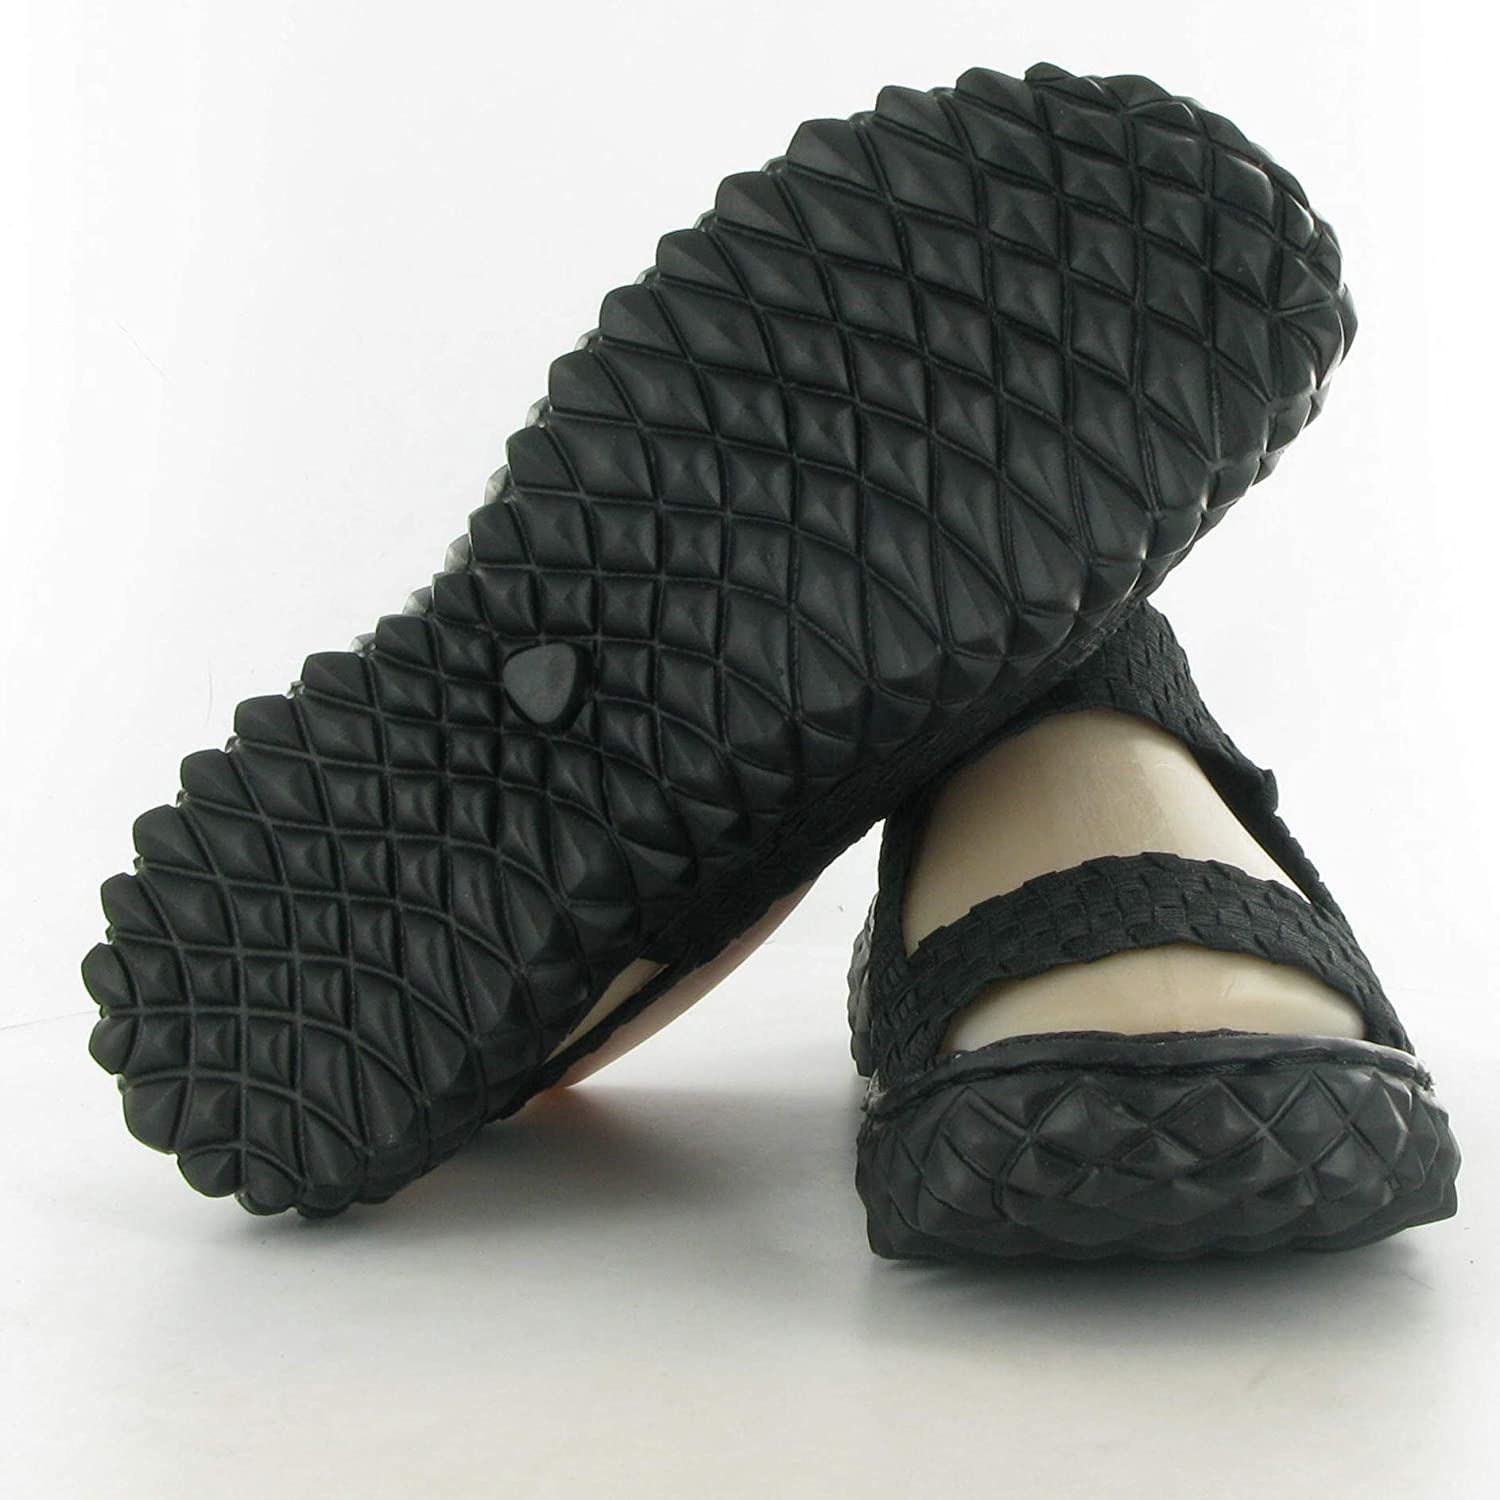 0ee0e654 Adesso - A1522 Woven Sandals, Black, 6 UK Adult: Amazon.co.uk: Shoes & Bags